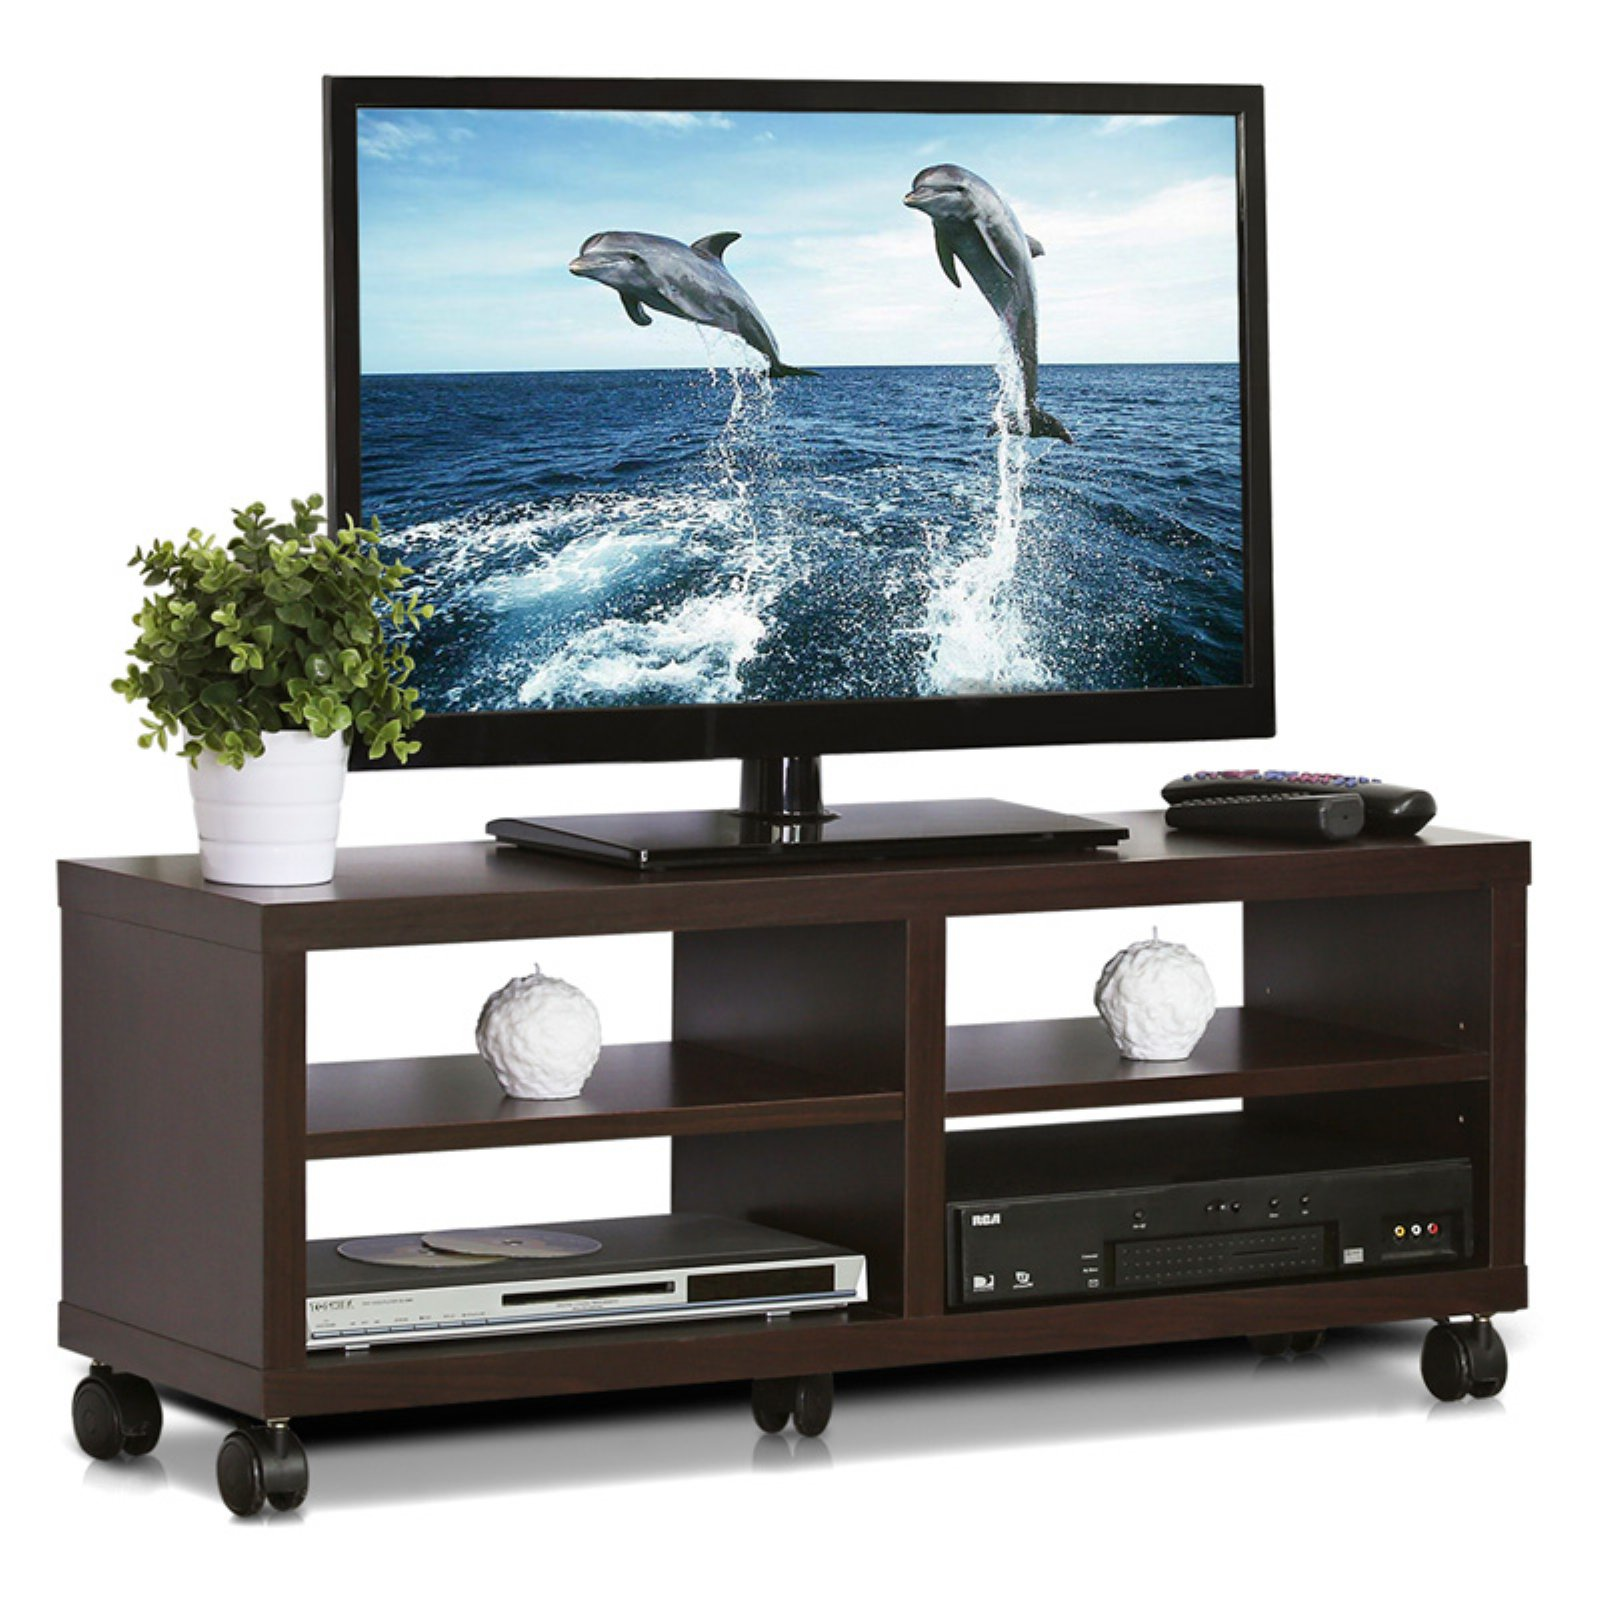 Furinno Indo Tier Low Rise Tatami Espresso TV Entertainment Stand with Casters